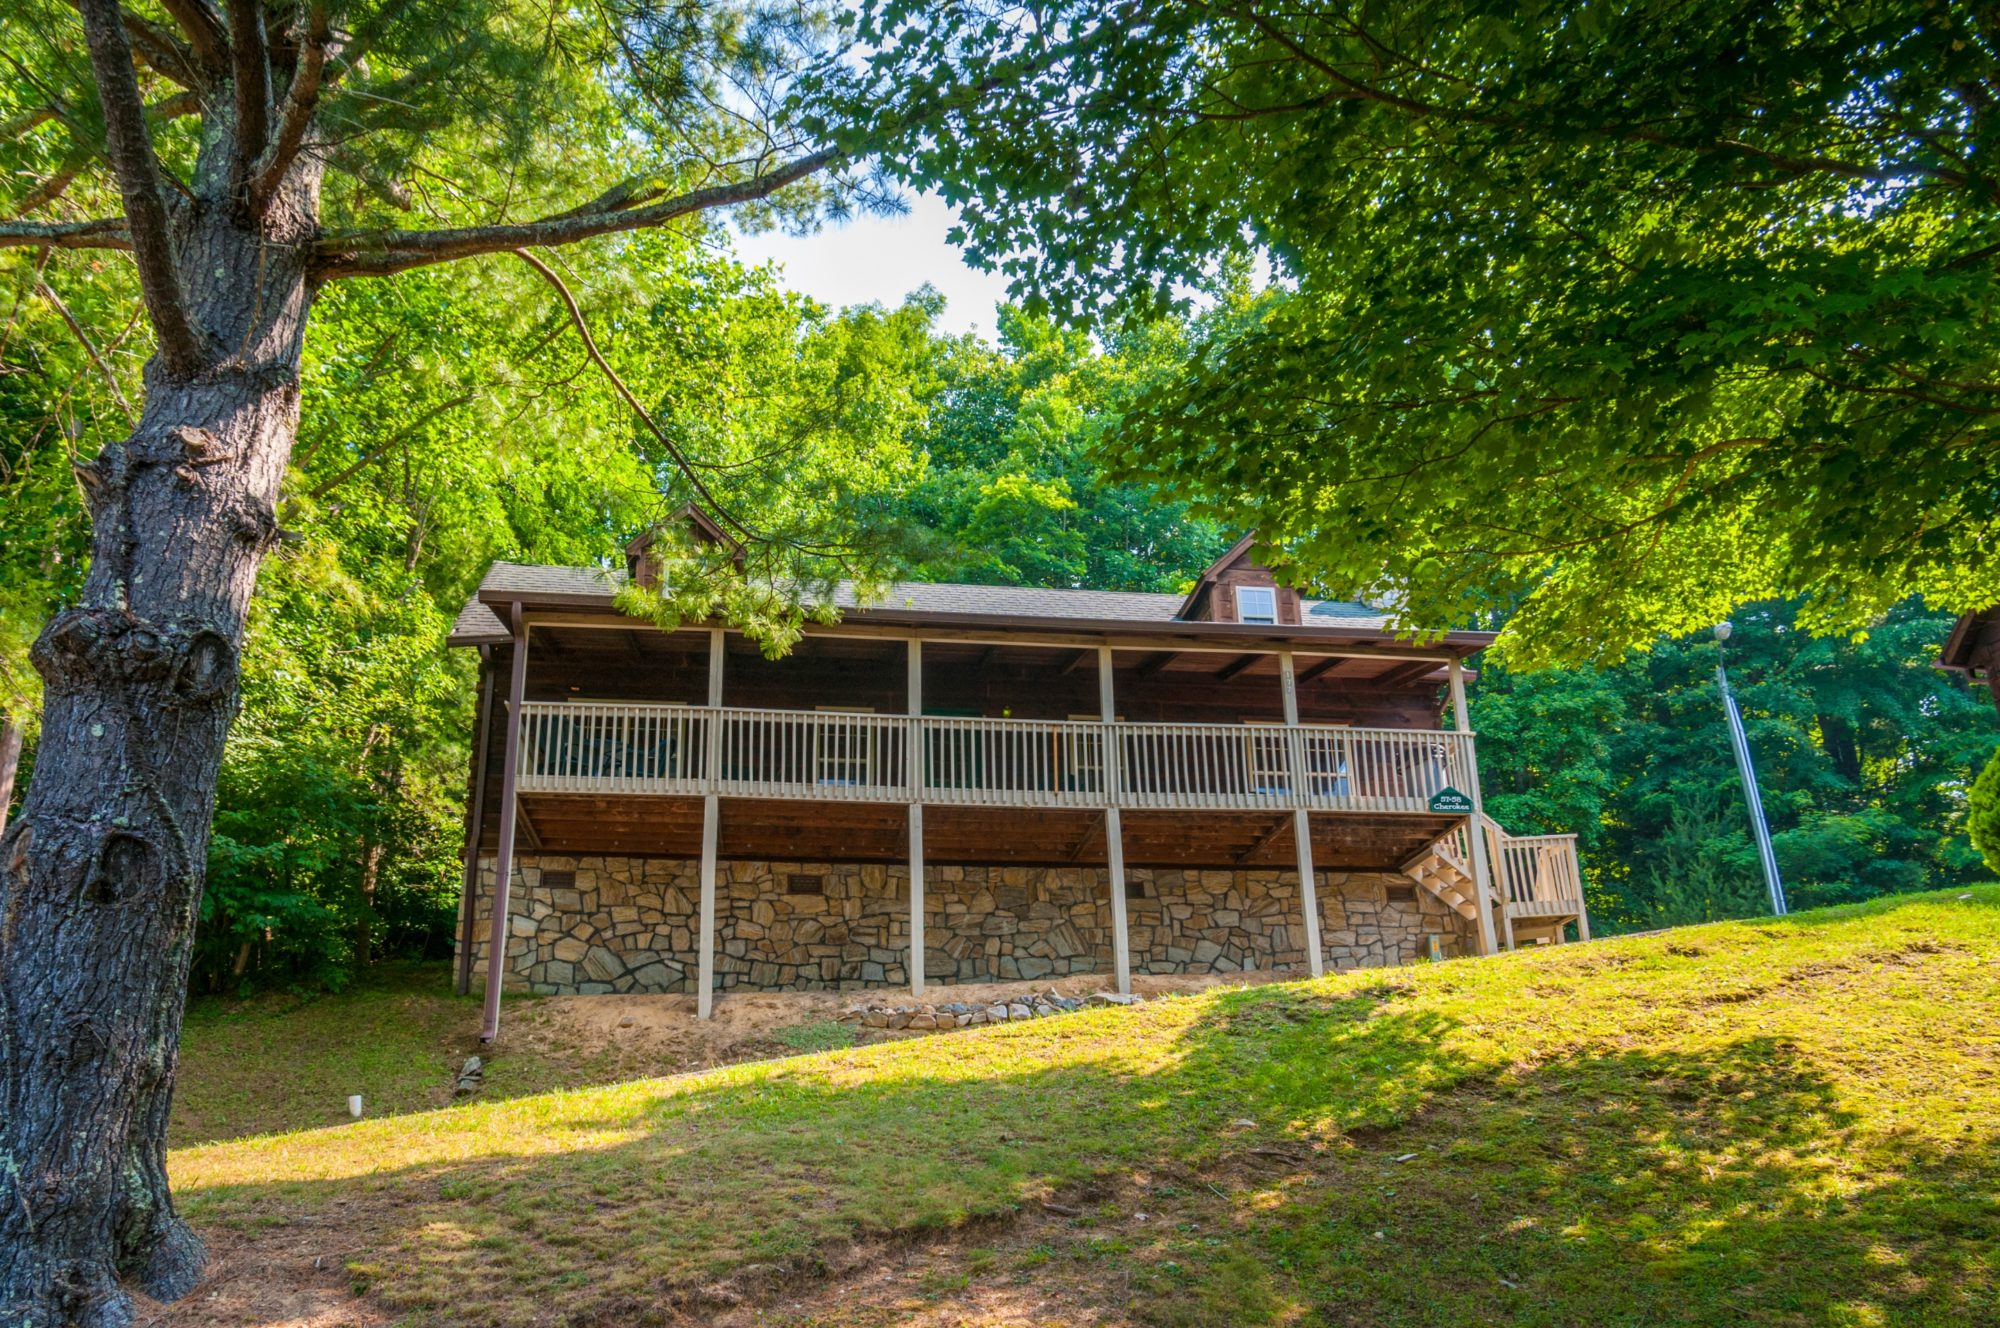 Cabin exterior showing wooden decking with wooden fencing, exterior wooden steps, trees, grassy area and landscaping